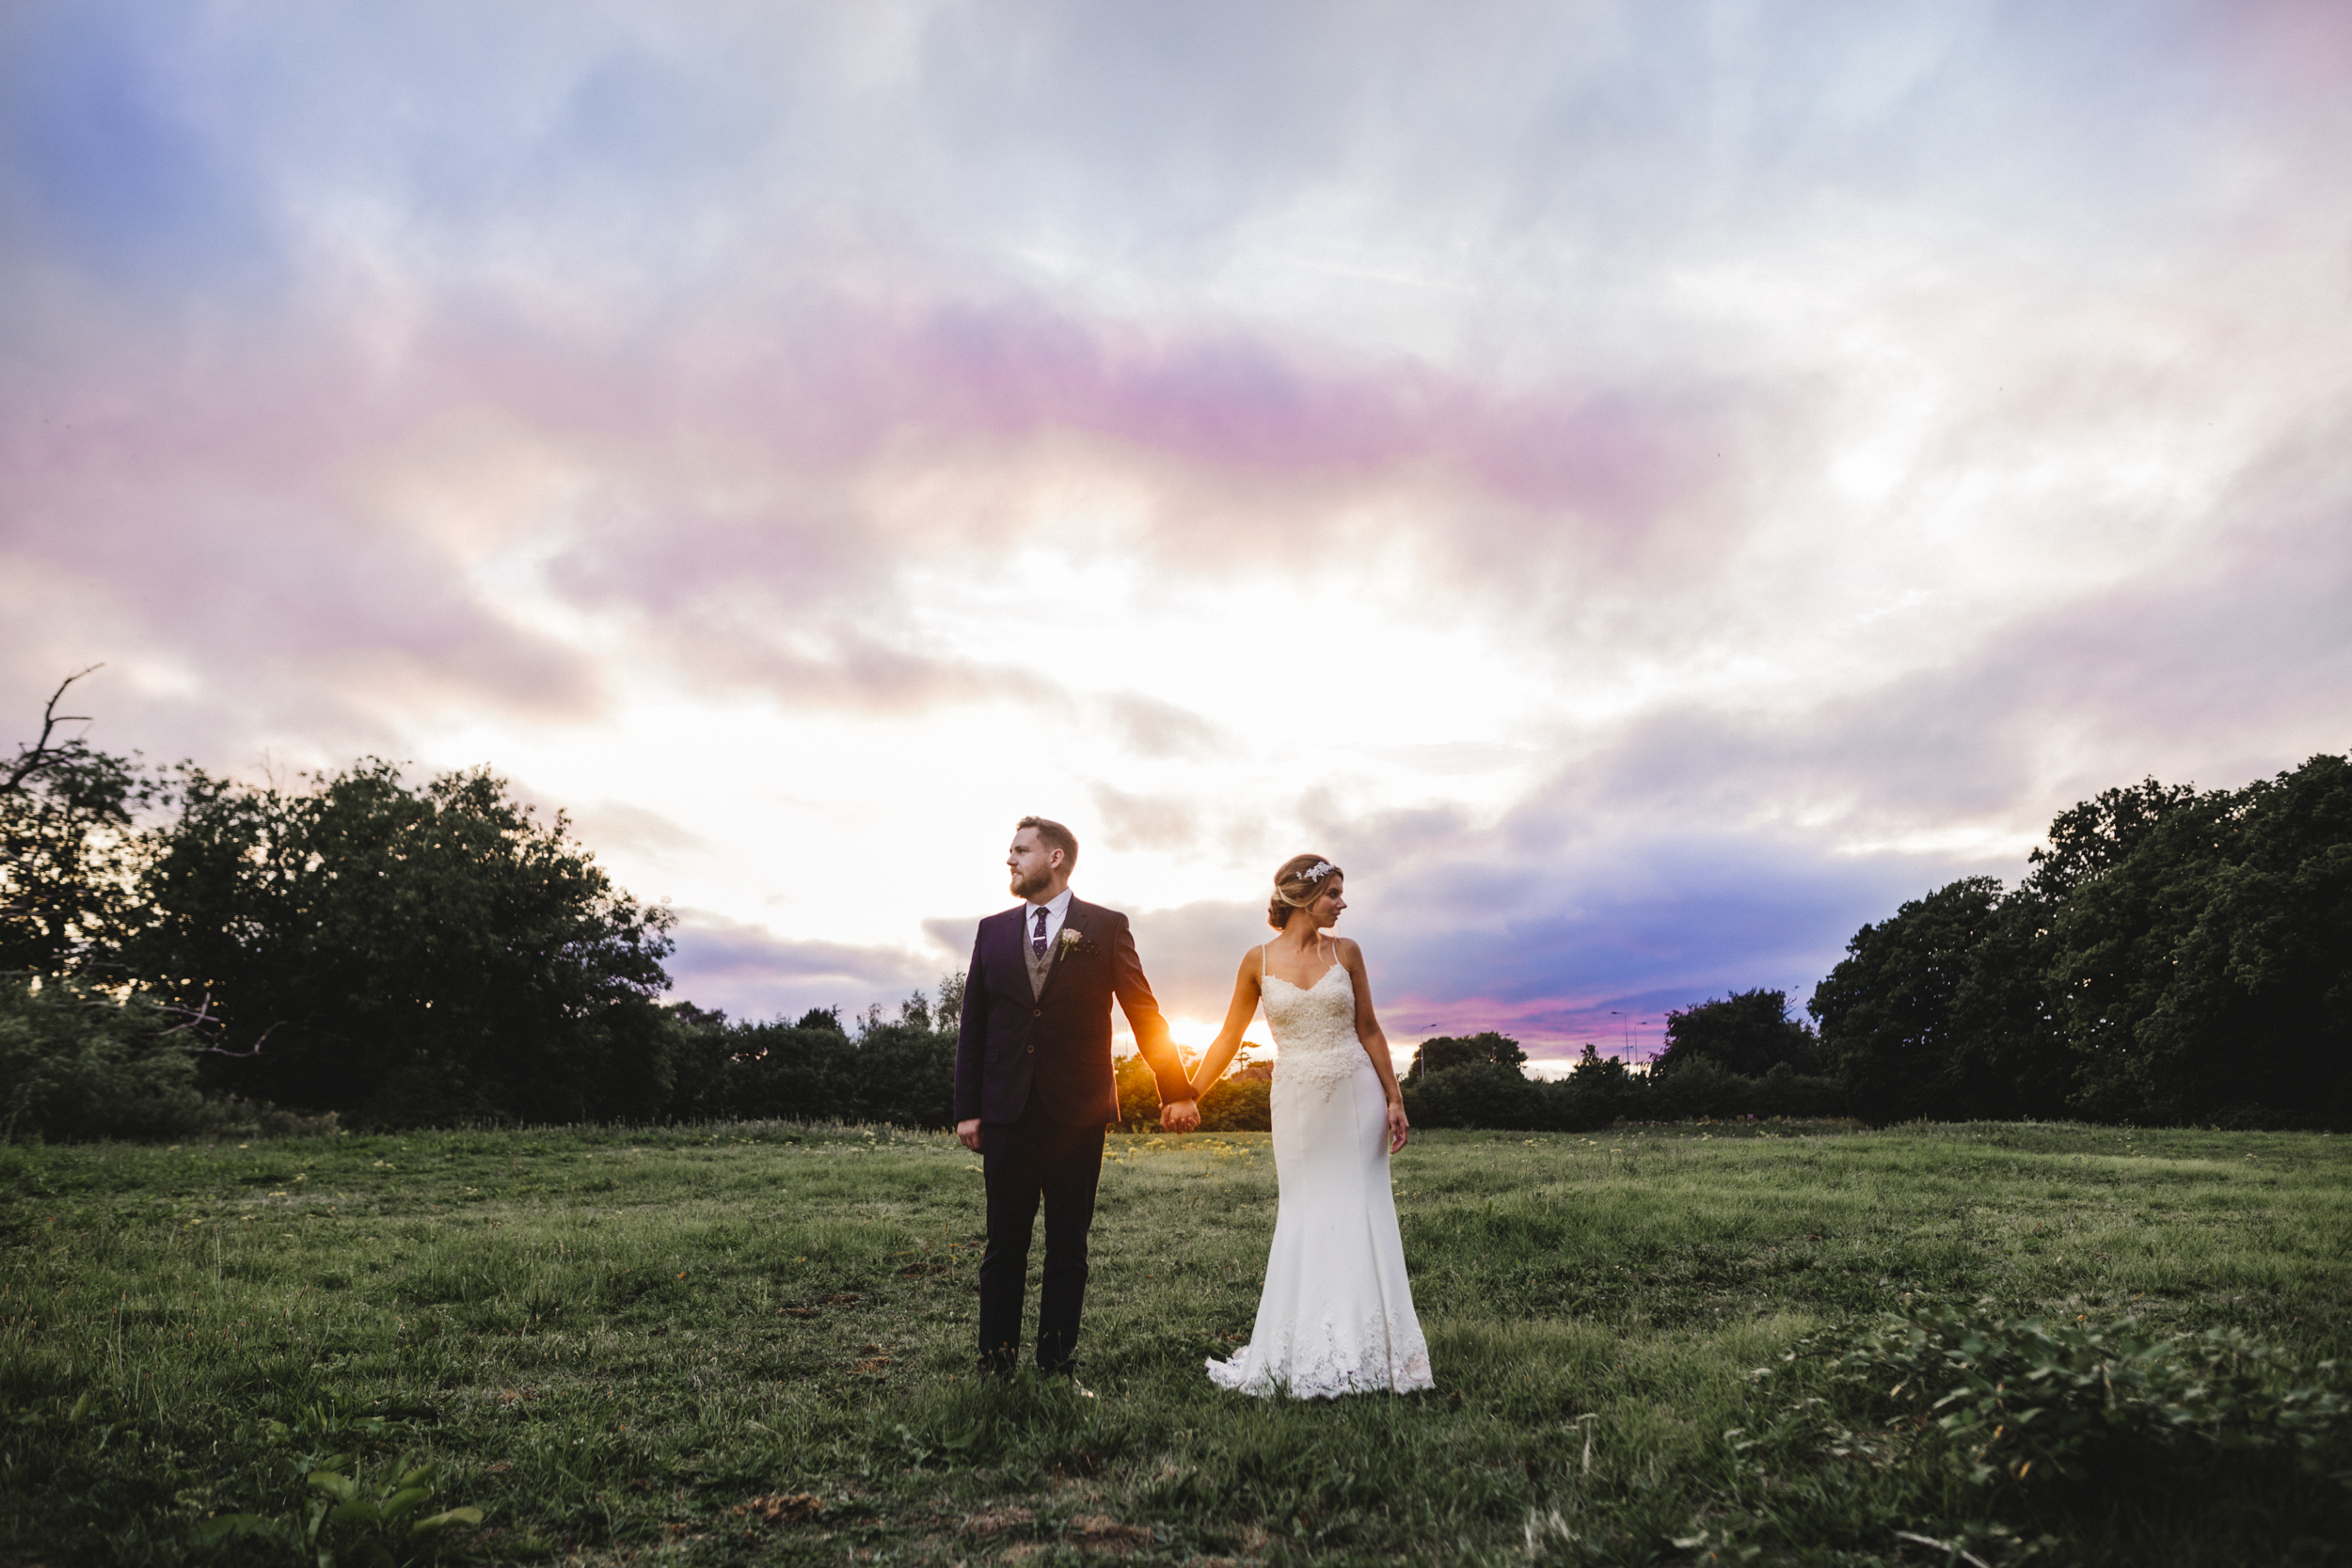 Amy Faith Photography UK alternative wedding photographer 00010.JPG